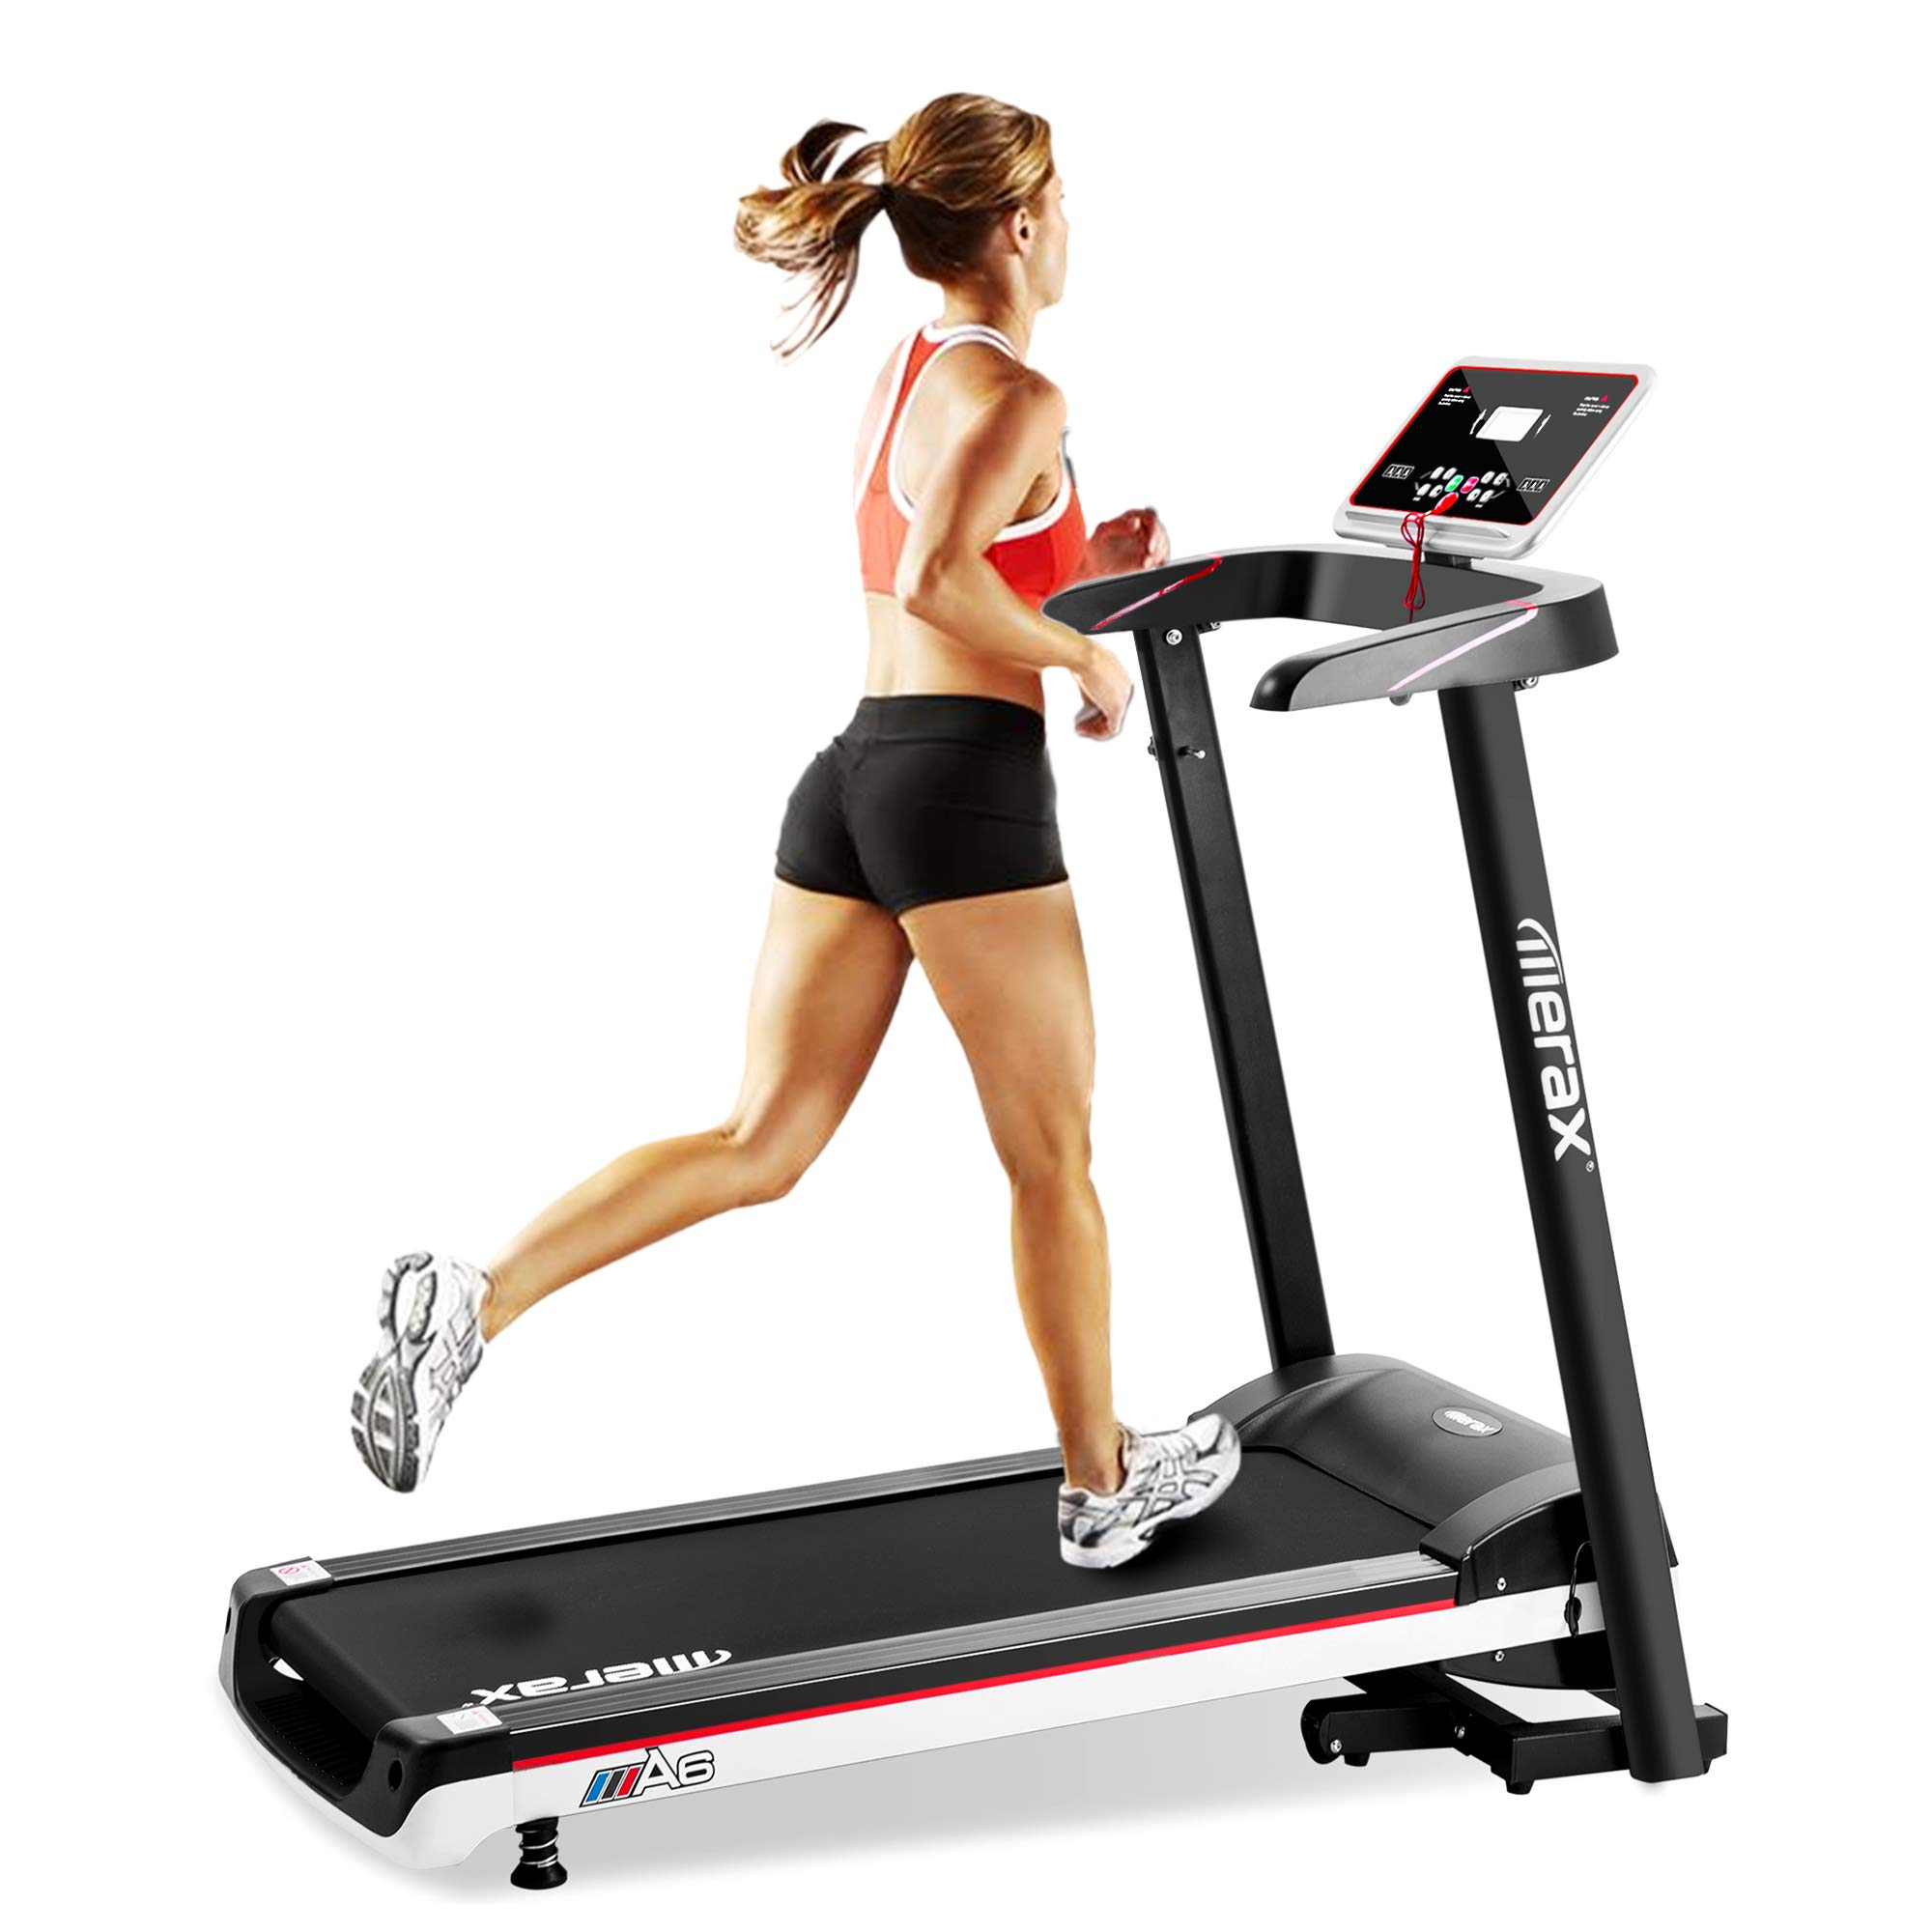 Danxee Folding Electric Treadmill Motorized Exercise Running Walking Machine Fitness Equipment with LCD Display (White)